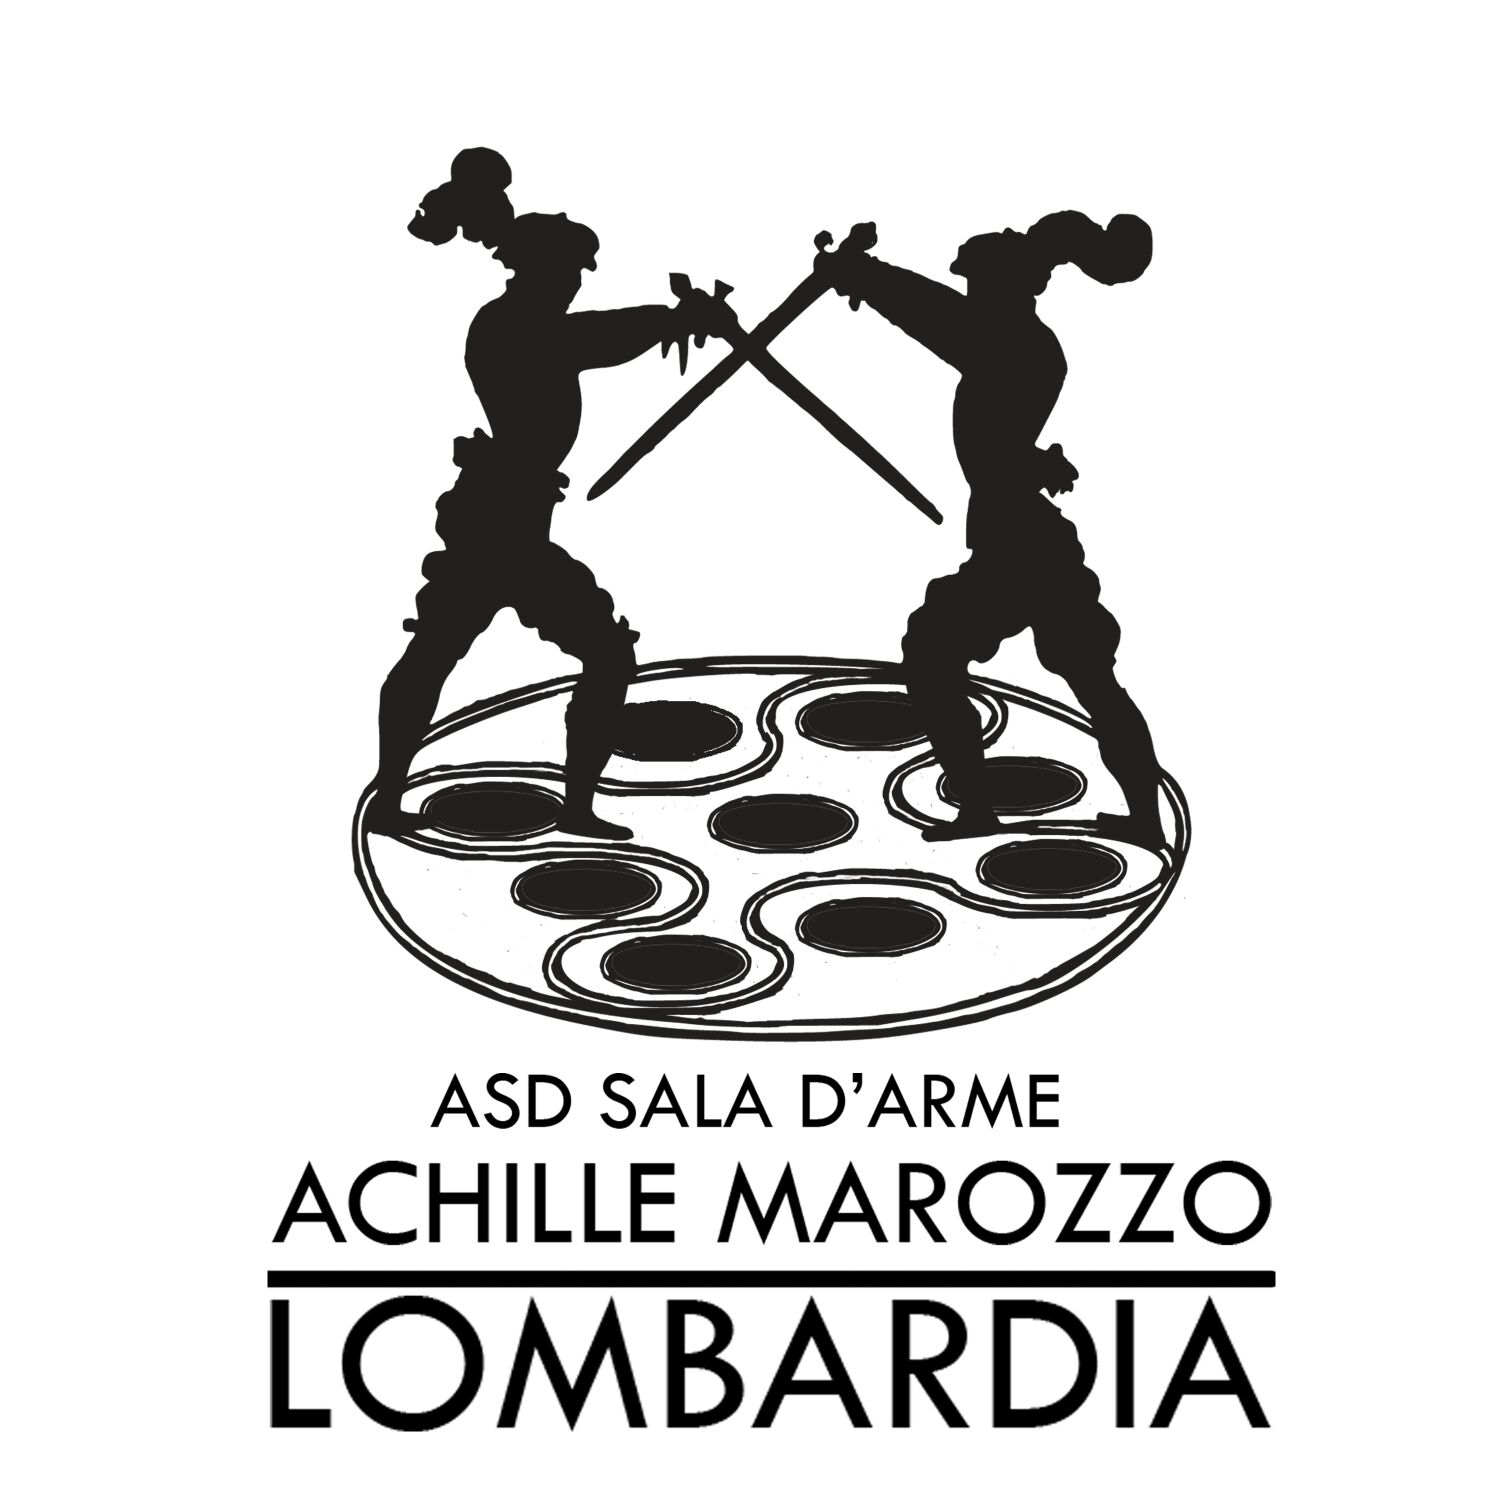 A.S.D. Sala d'Arme Achille Marozzo Lombardia